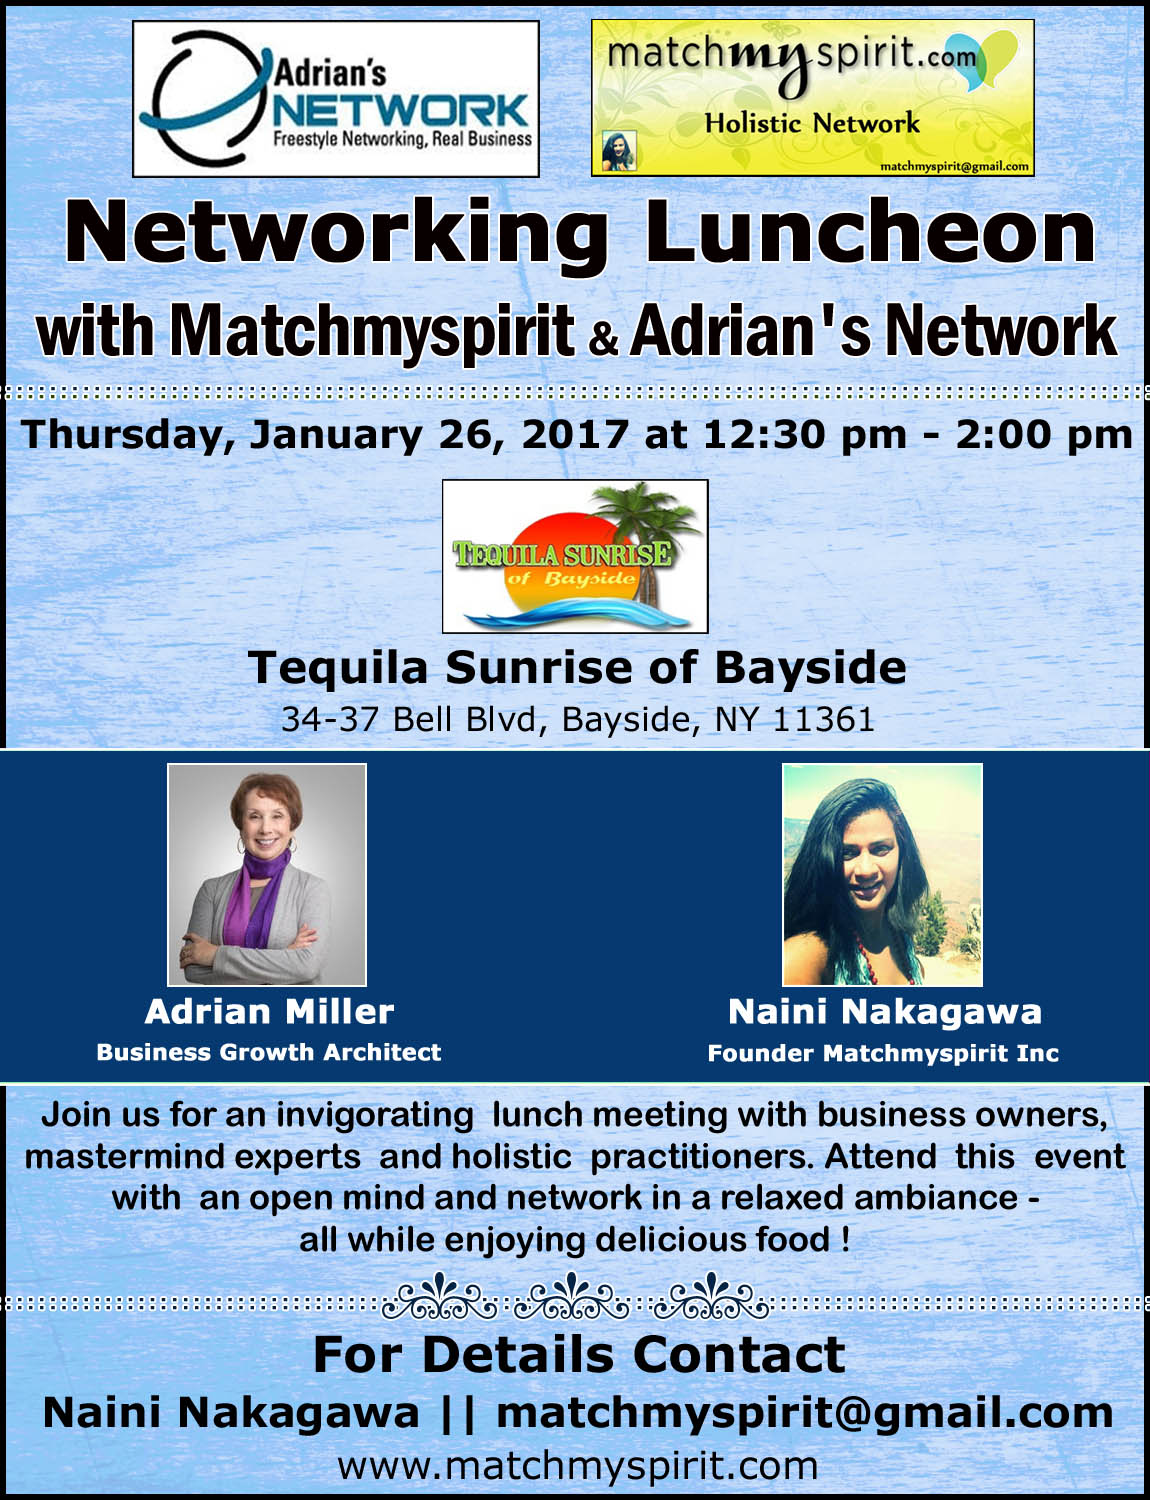 Networking Luncheon with Matchmyspirit & Adrian's Network